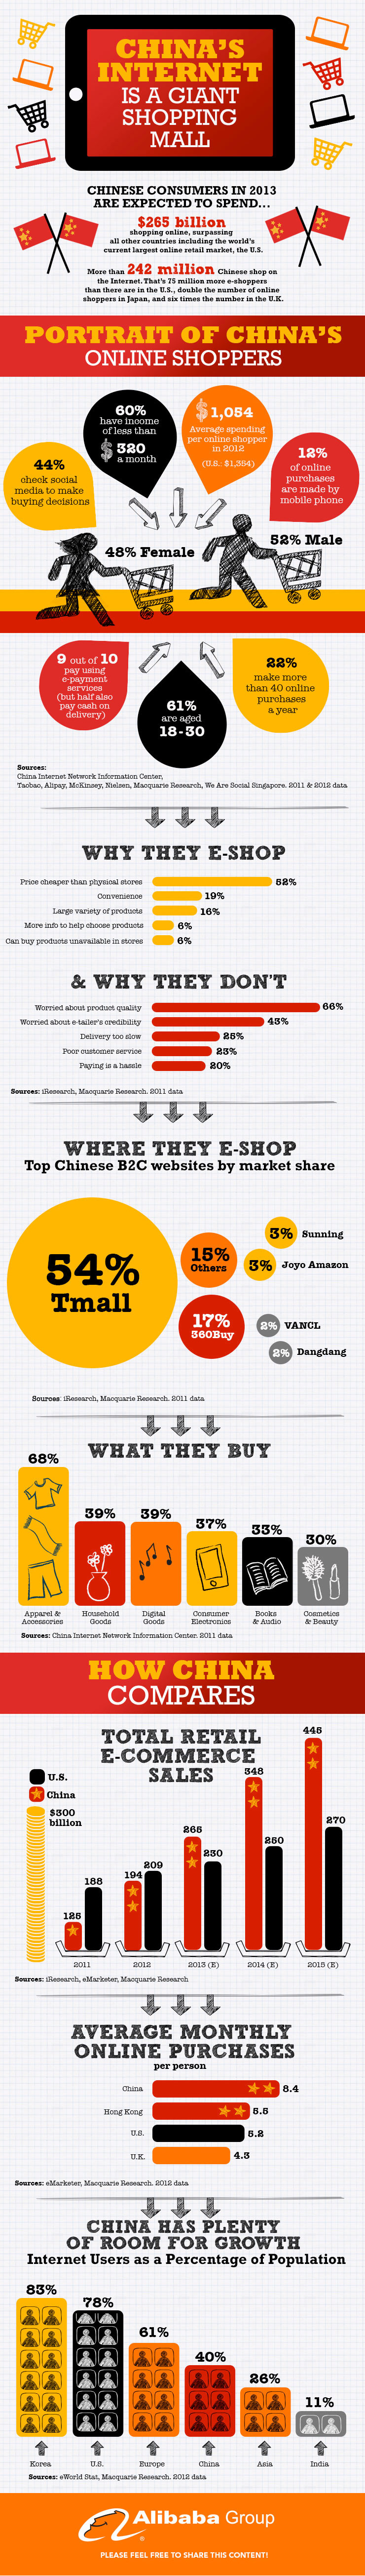 china_online_shopping-infographic.jpg